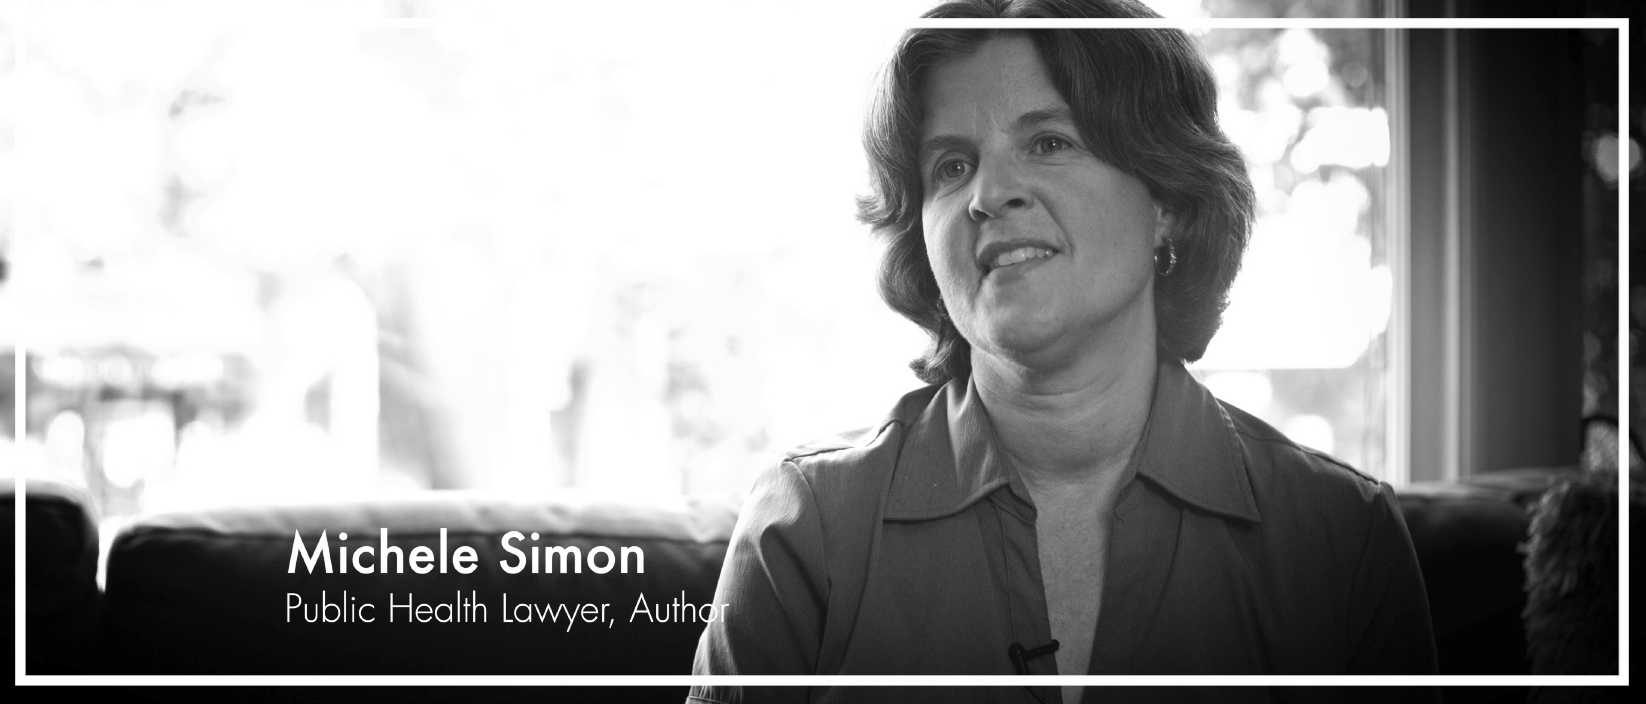 Michele Simon  is a public health lawyer specializing in legal strategies to counter corporate tactics that harm the public's health. Simon has been researching and writing about the food industry and food politics since 1996. Her first book,  Appetite for Profit: How the Food Industry Undermines Our Health and How to Fight Back , was published by Nation Books in 2006. Her groundbreaking 2007 report on alcoholic energy drinks led to federal action. She has a master's degree in public health from Yale University and received her law degree from the University of California, Hastings College of the Law.